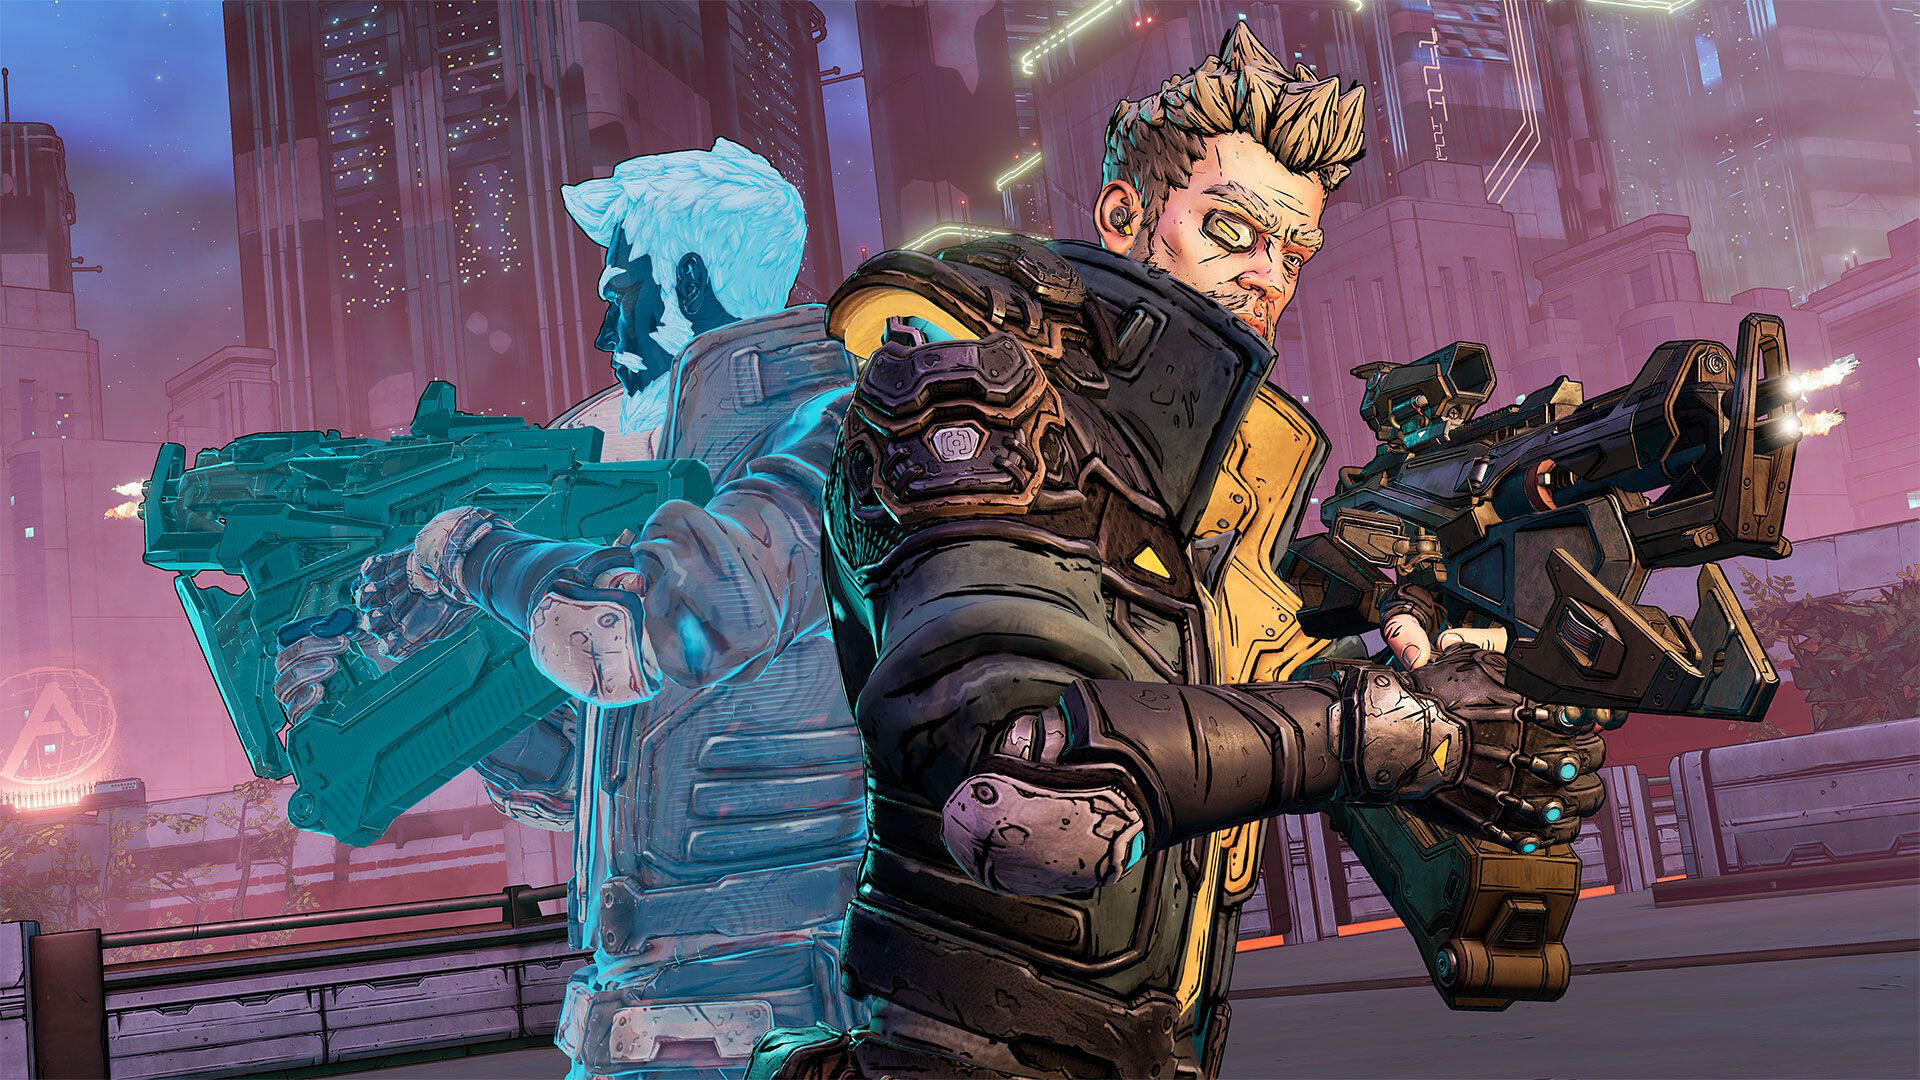 Borderlands 3 Fans Love Zane, Despite Him Falling Behind Other Vault Hunters